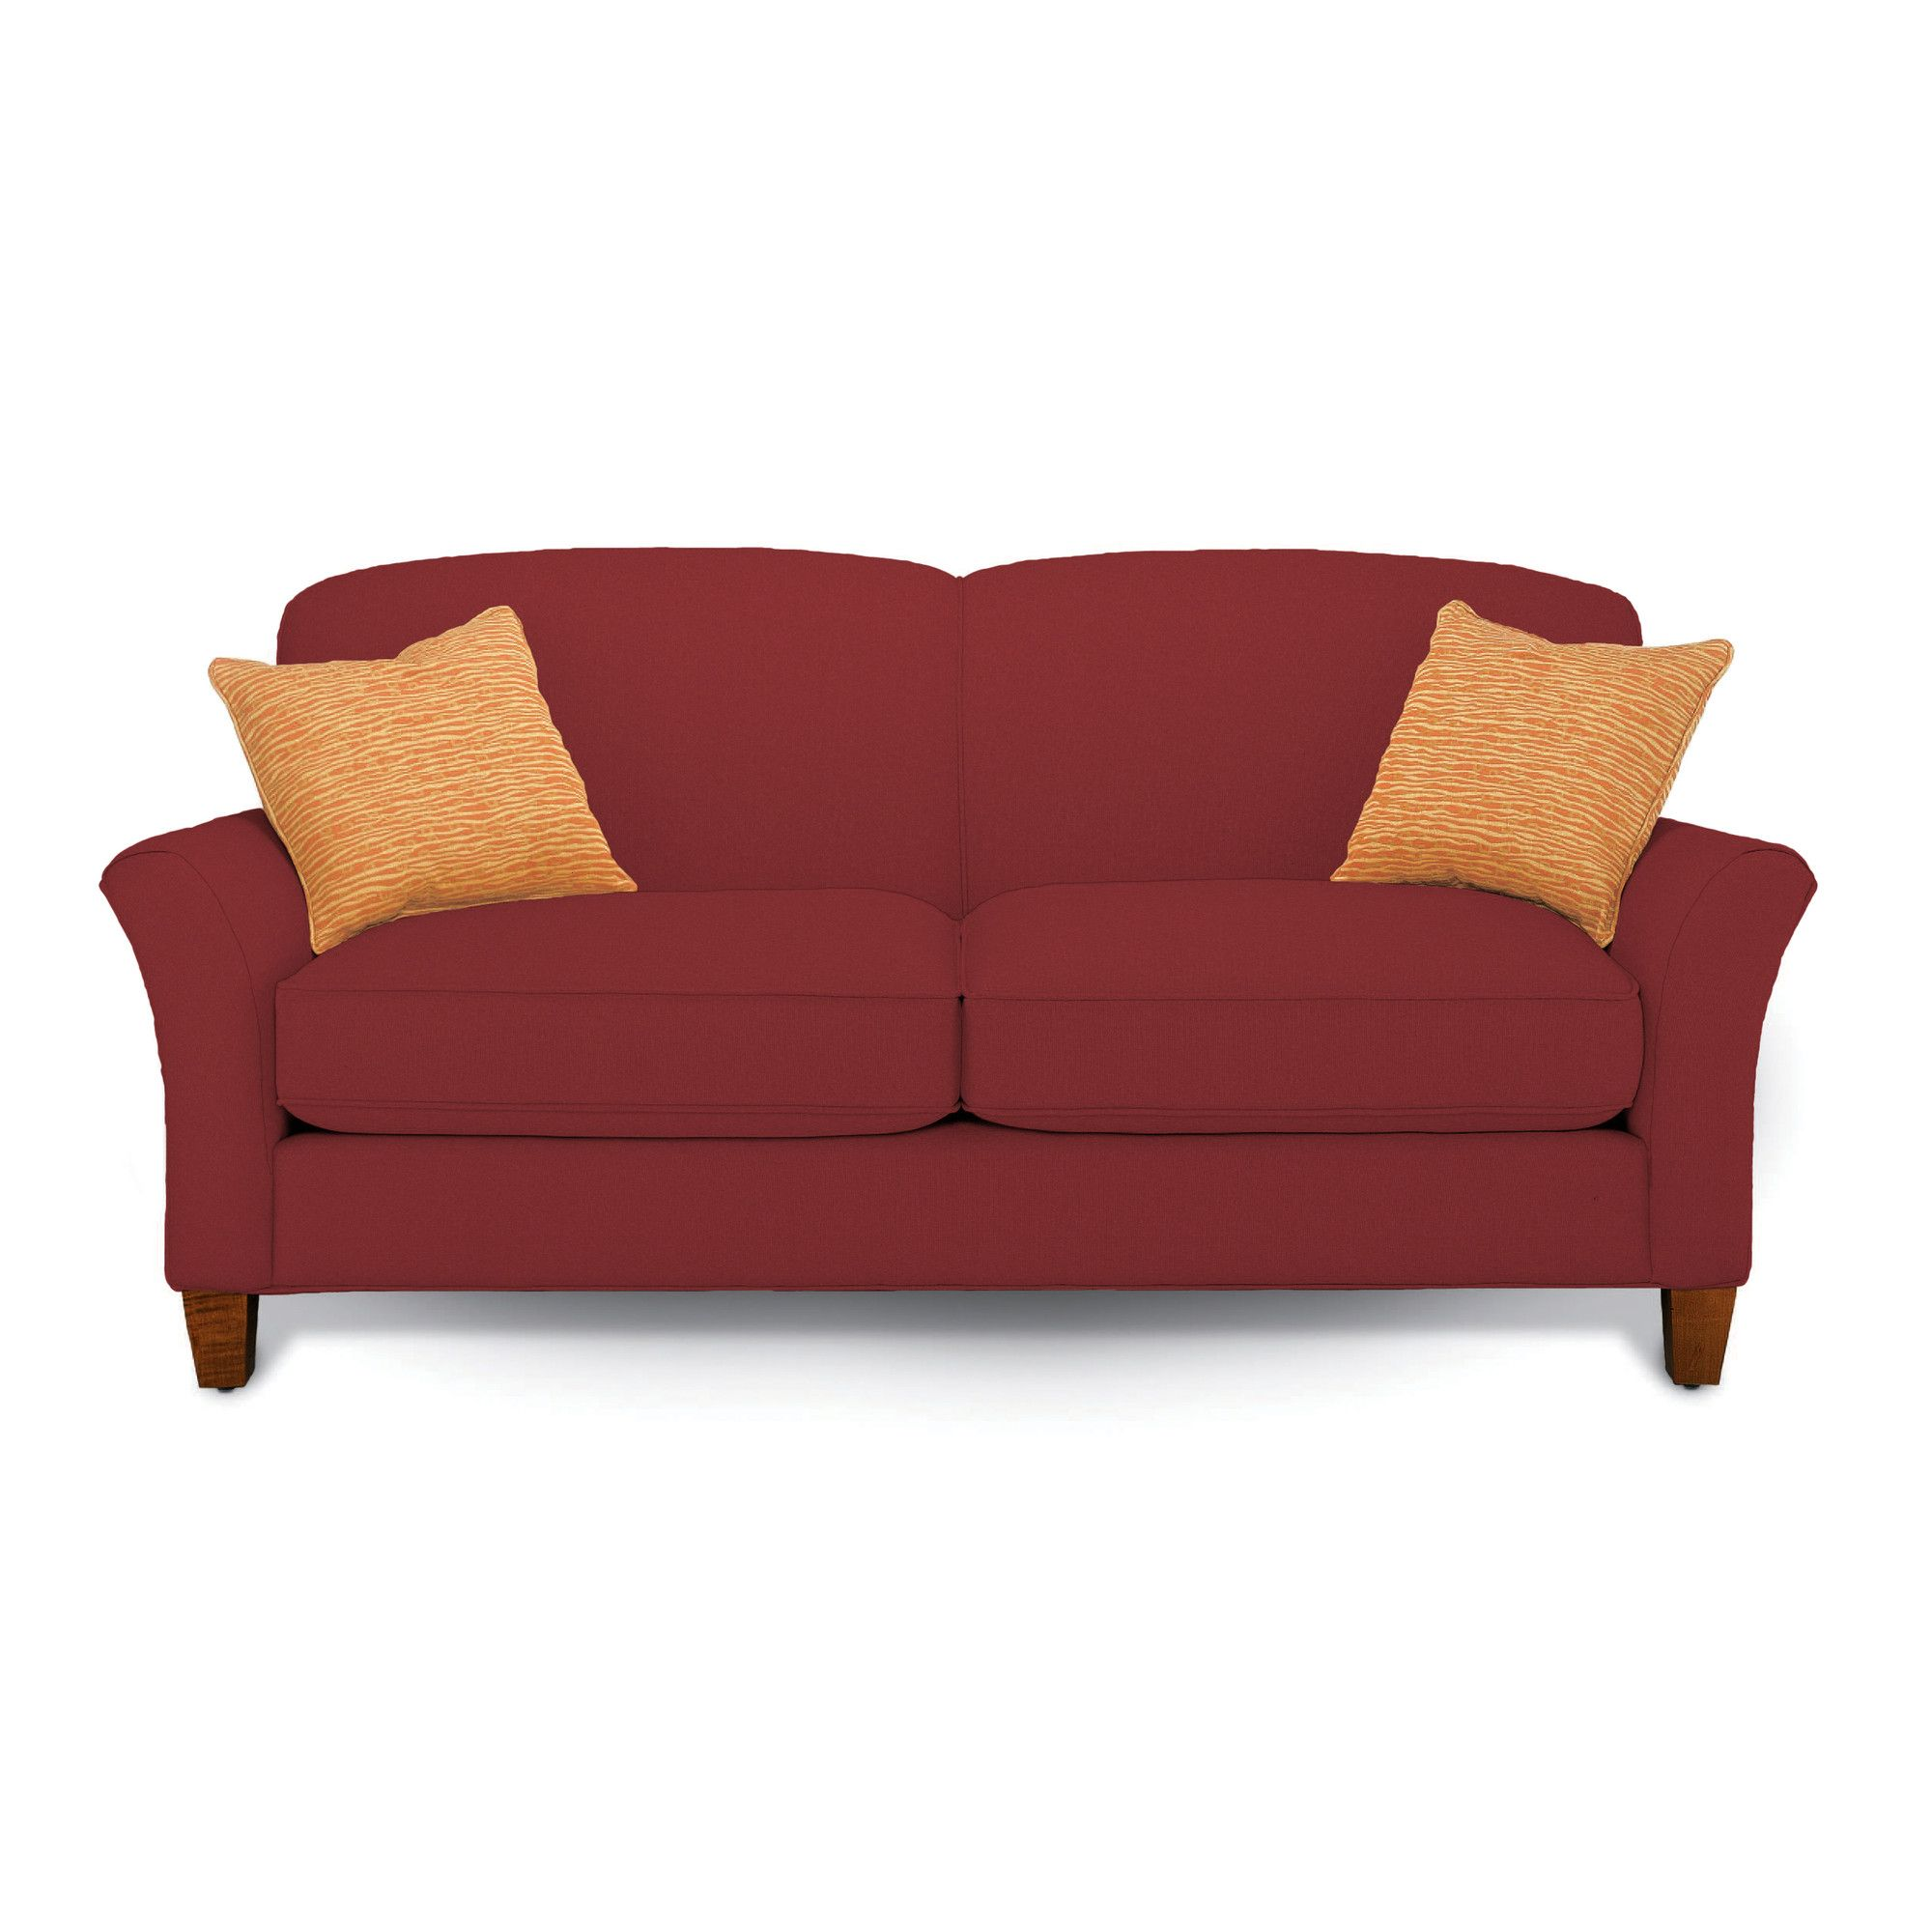 Rowe Furniture Capri Mini Mod Apartment Loveseat Reviews Wayfair